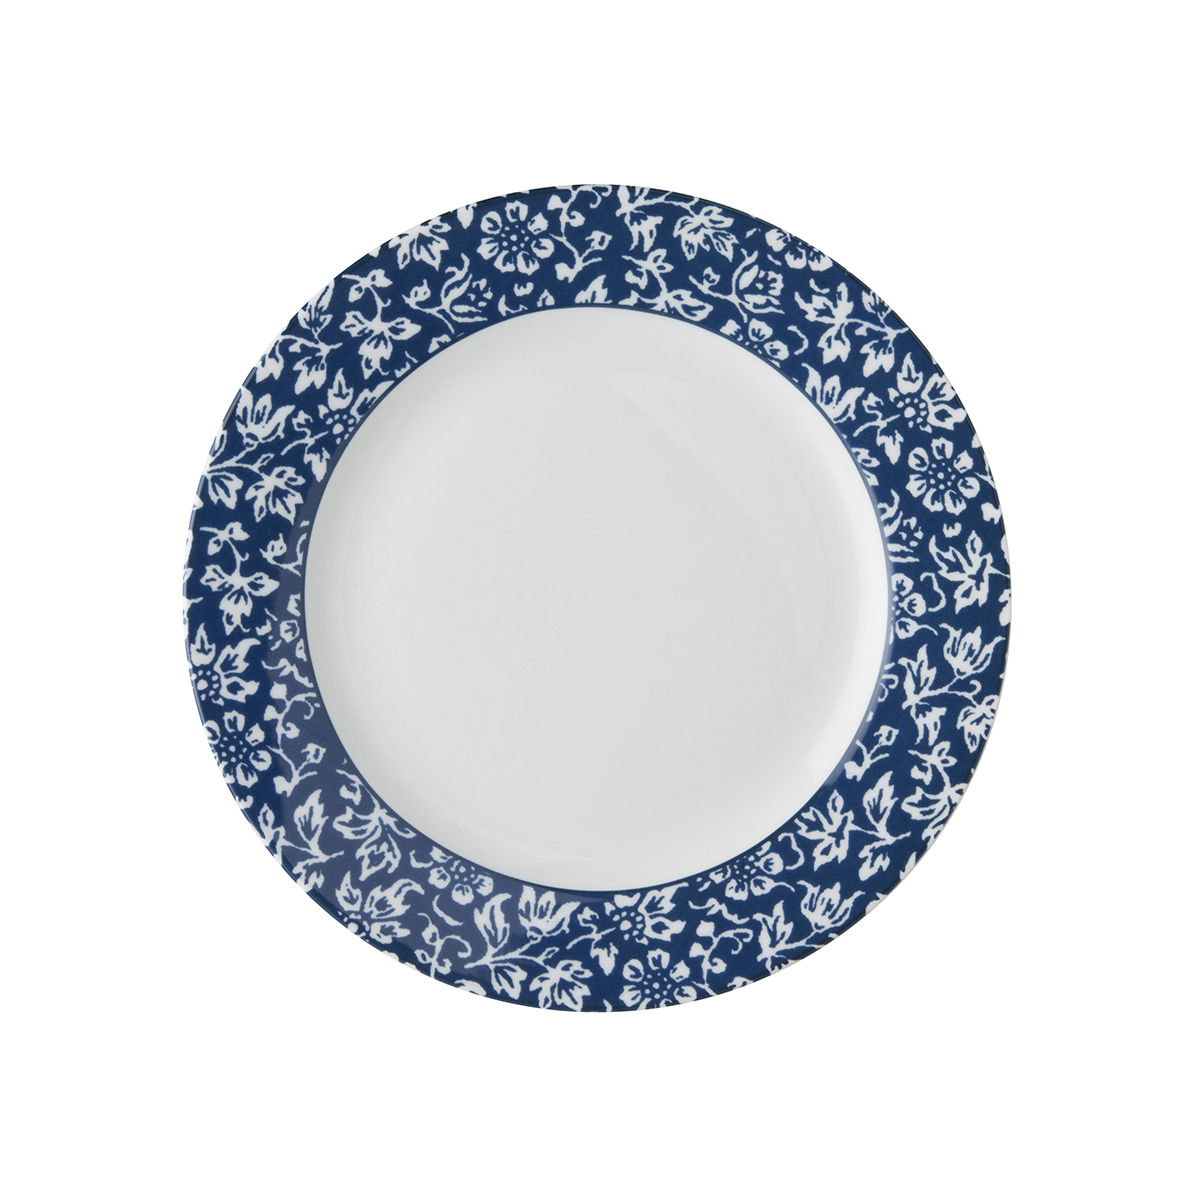 "Laura Ashley 6.85"" Plate Sweet Allysum - product images  of"